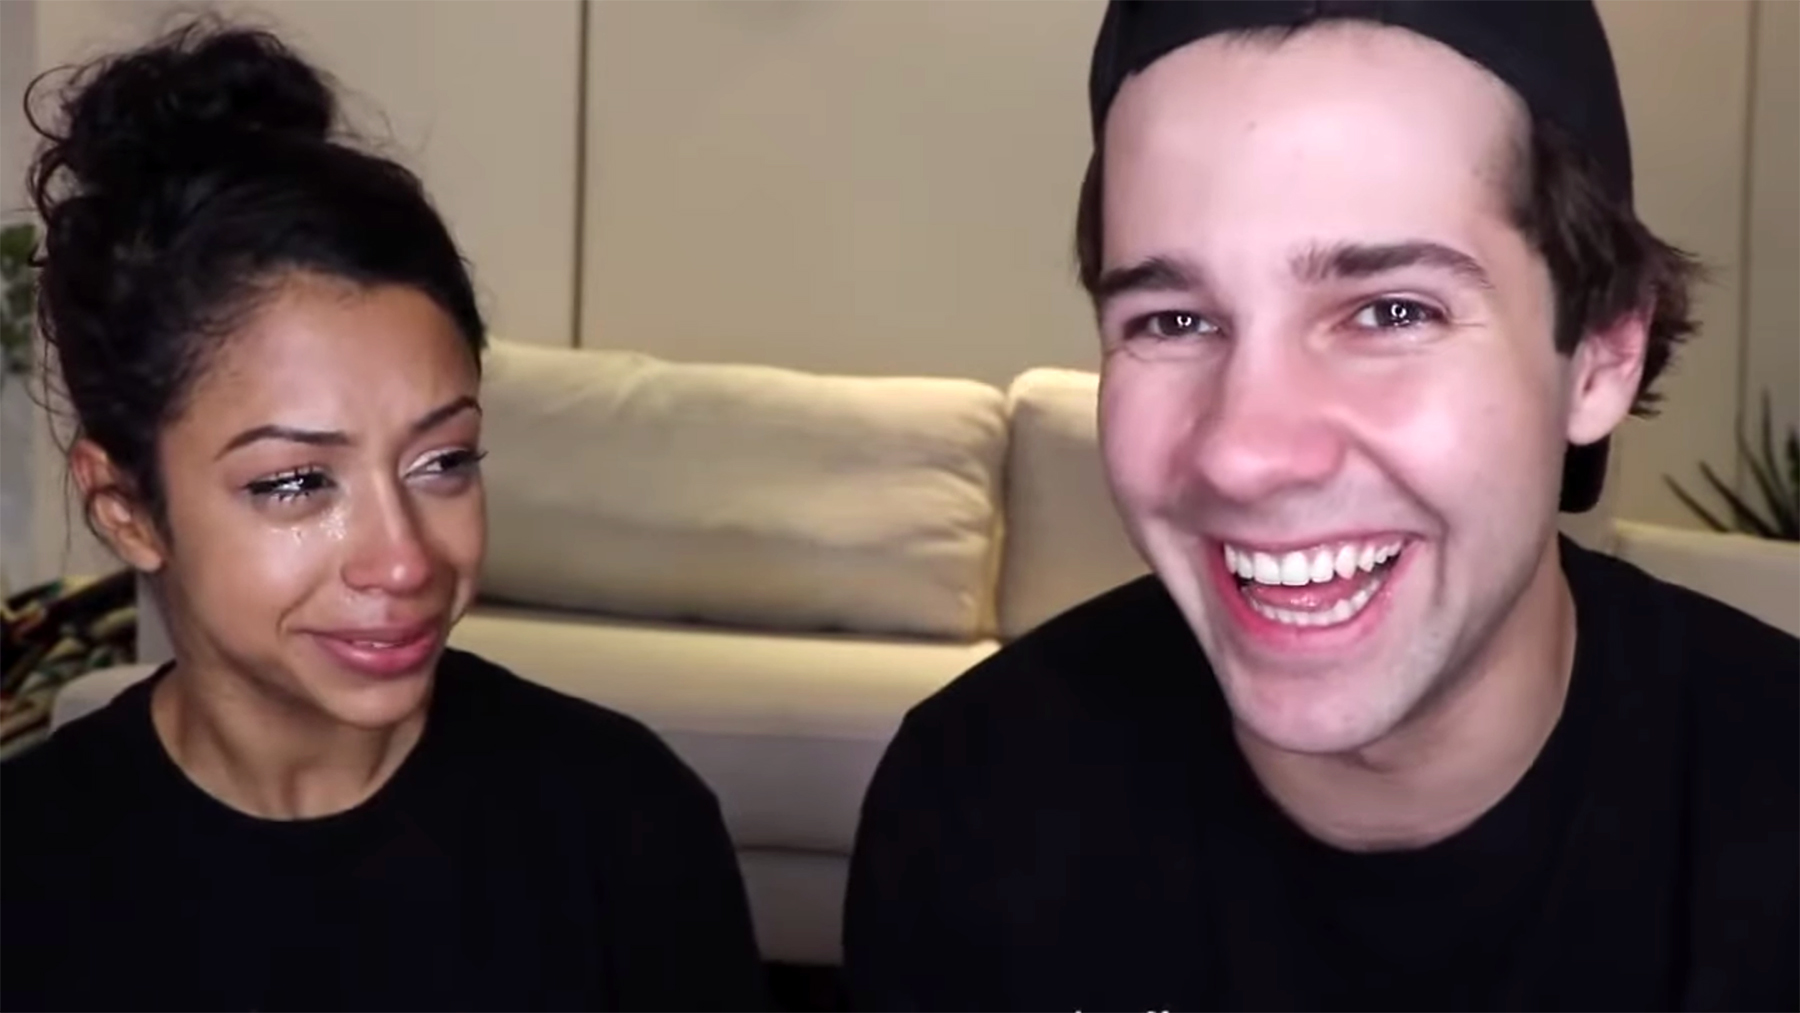 Dobrik with then- girlfriend Liza Koshy, another social media influencer, in their famous breakup video, which was viewed over 60 million times.